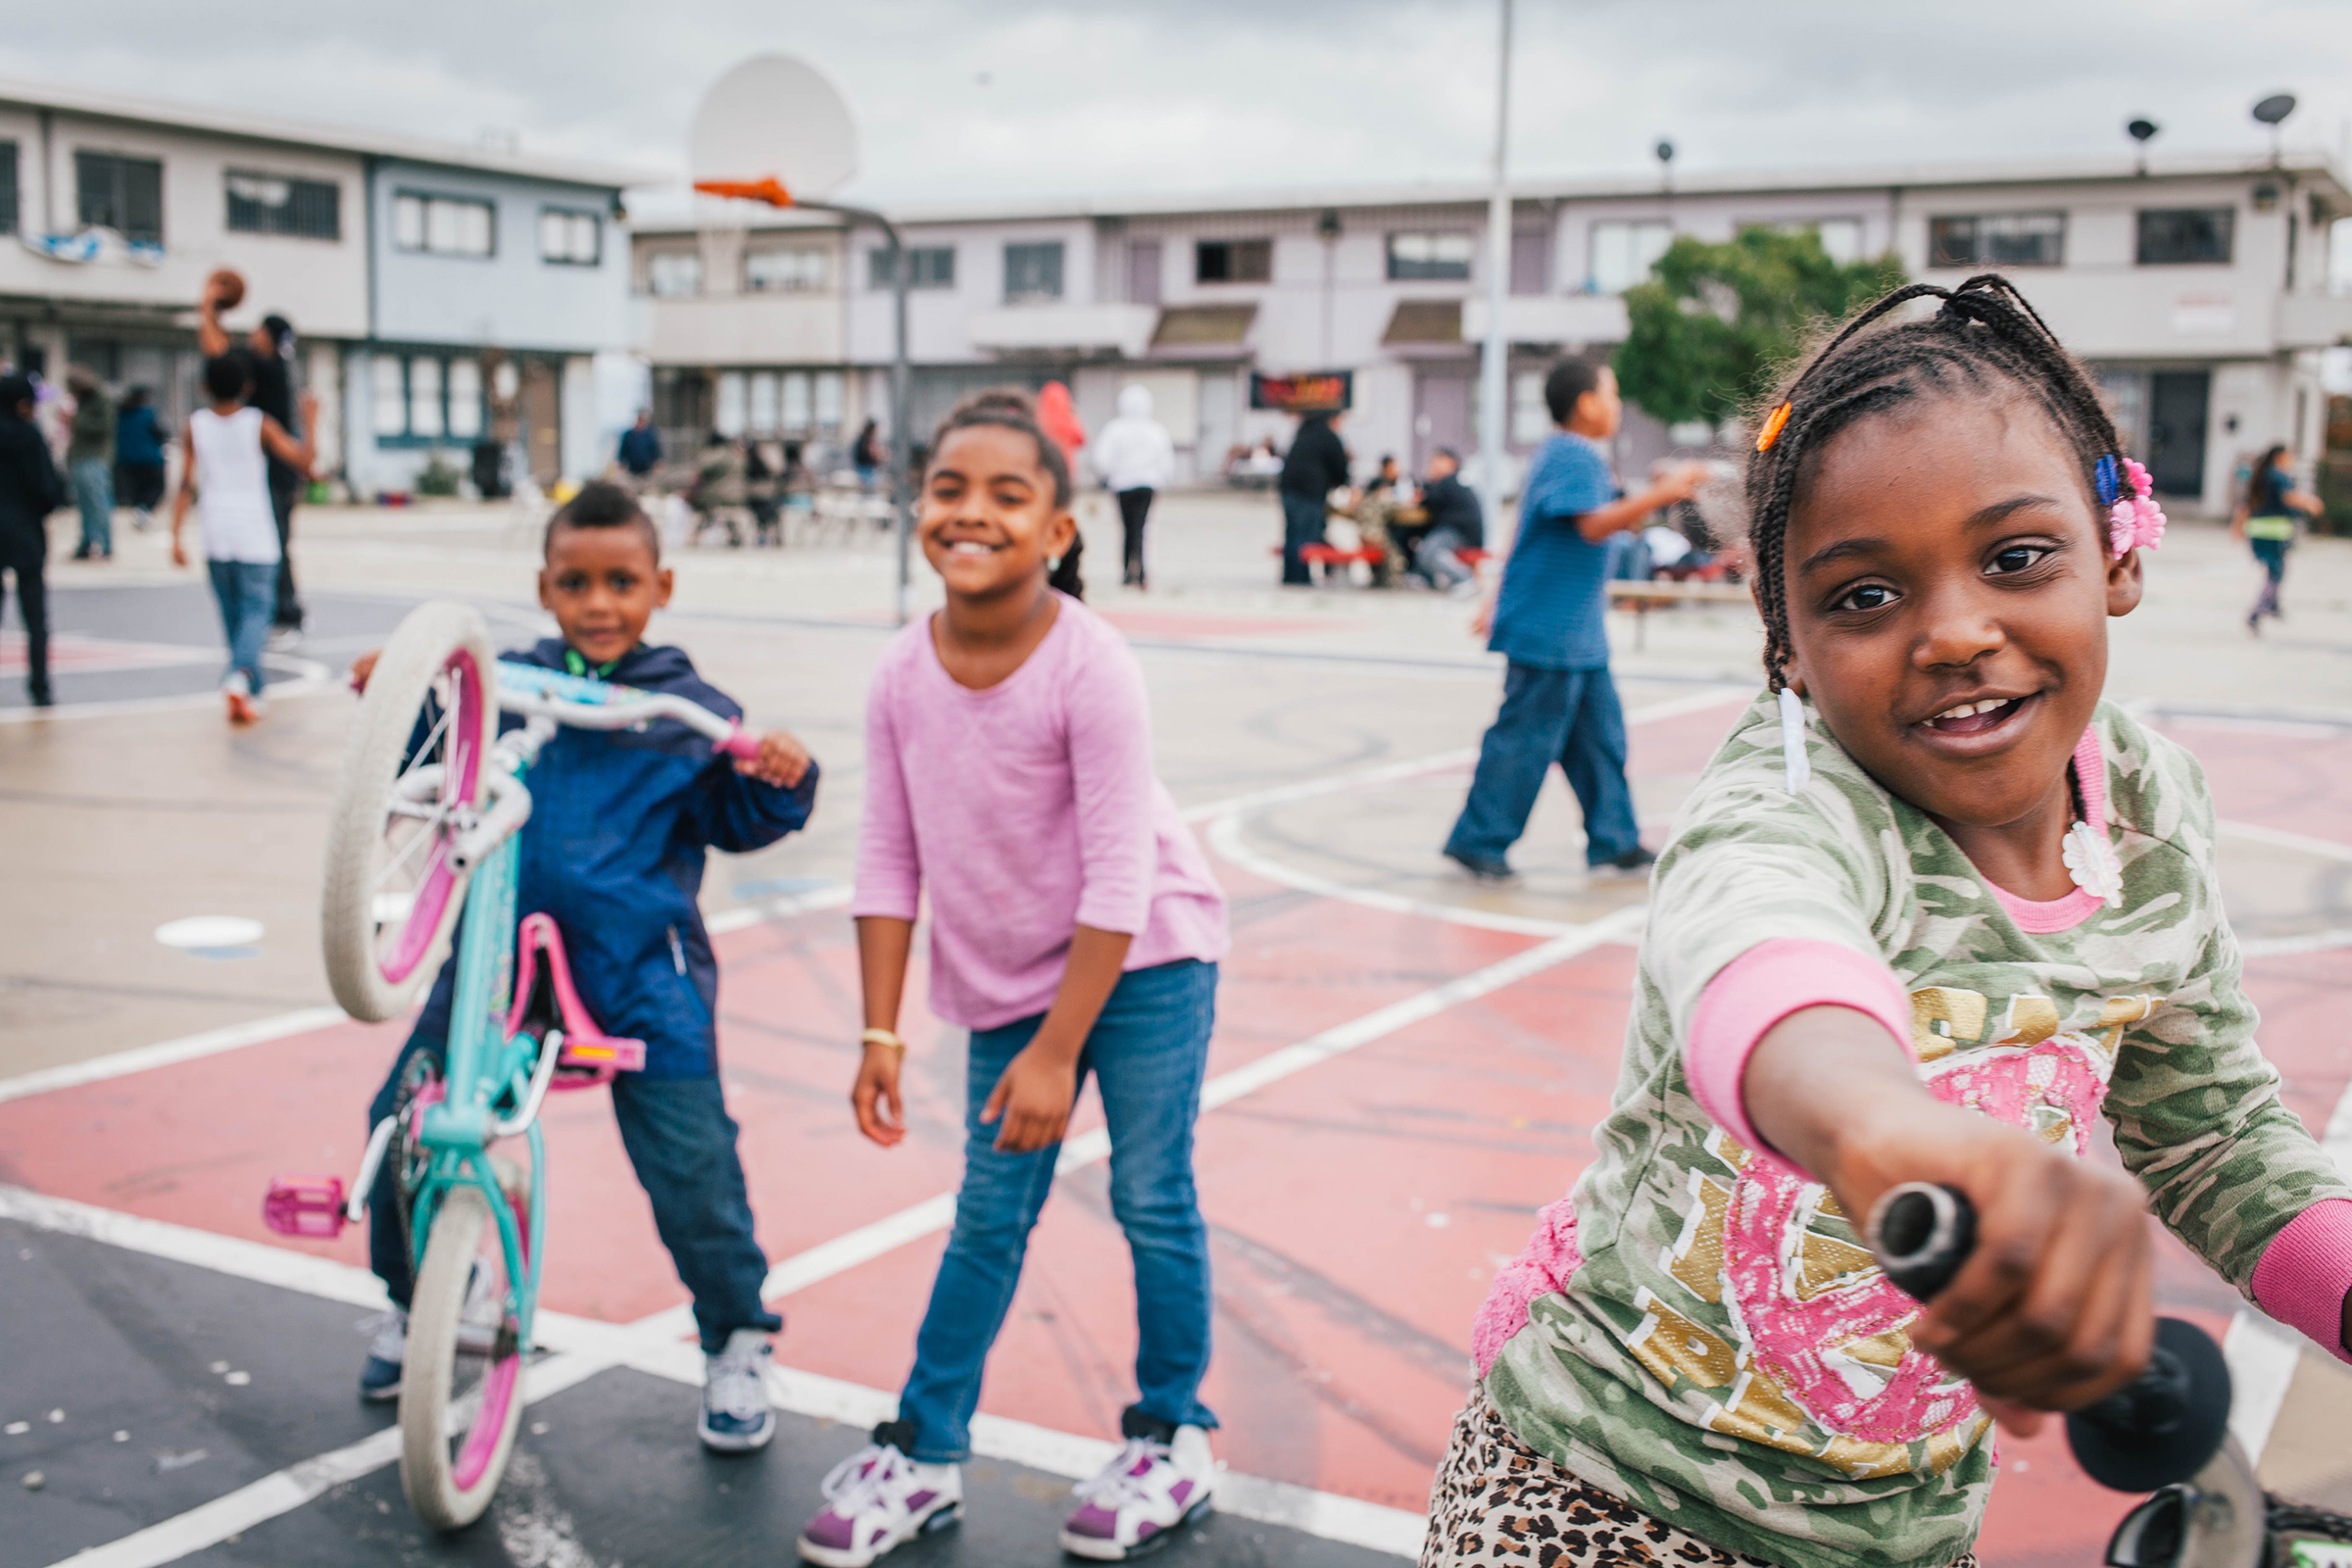 Kids play at a block party in Bayview-Hunter's Point, San Francisco. (Felix Uribe)